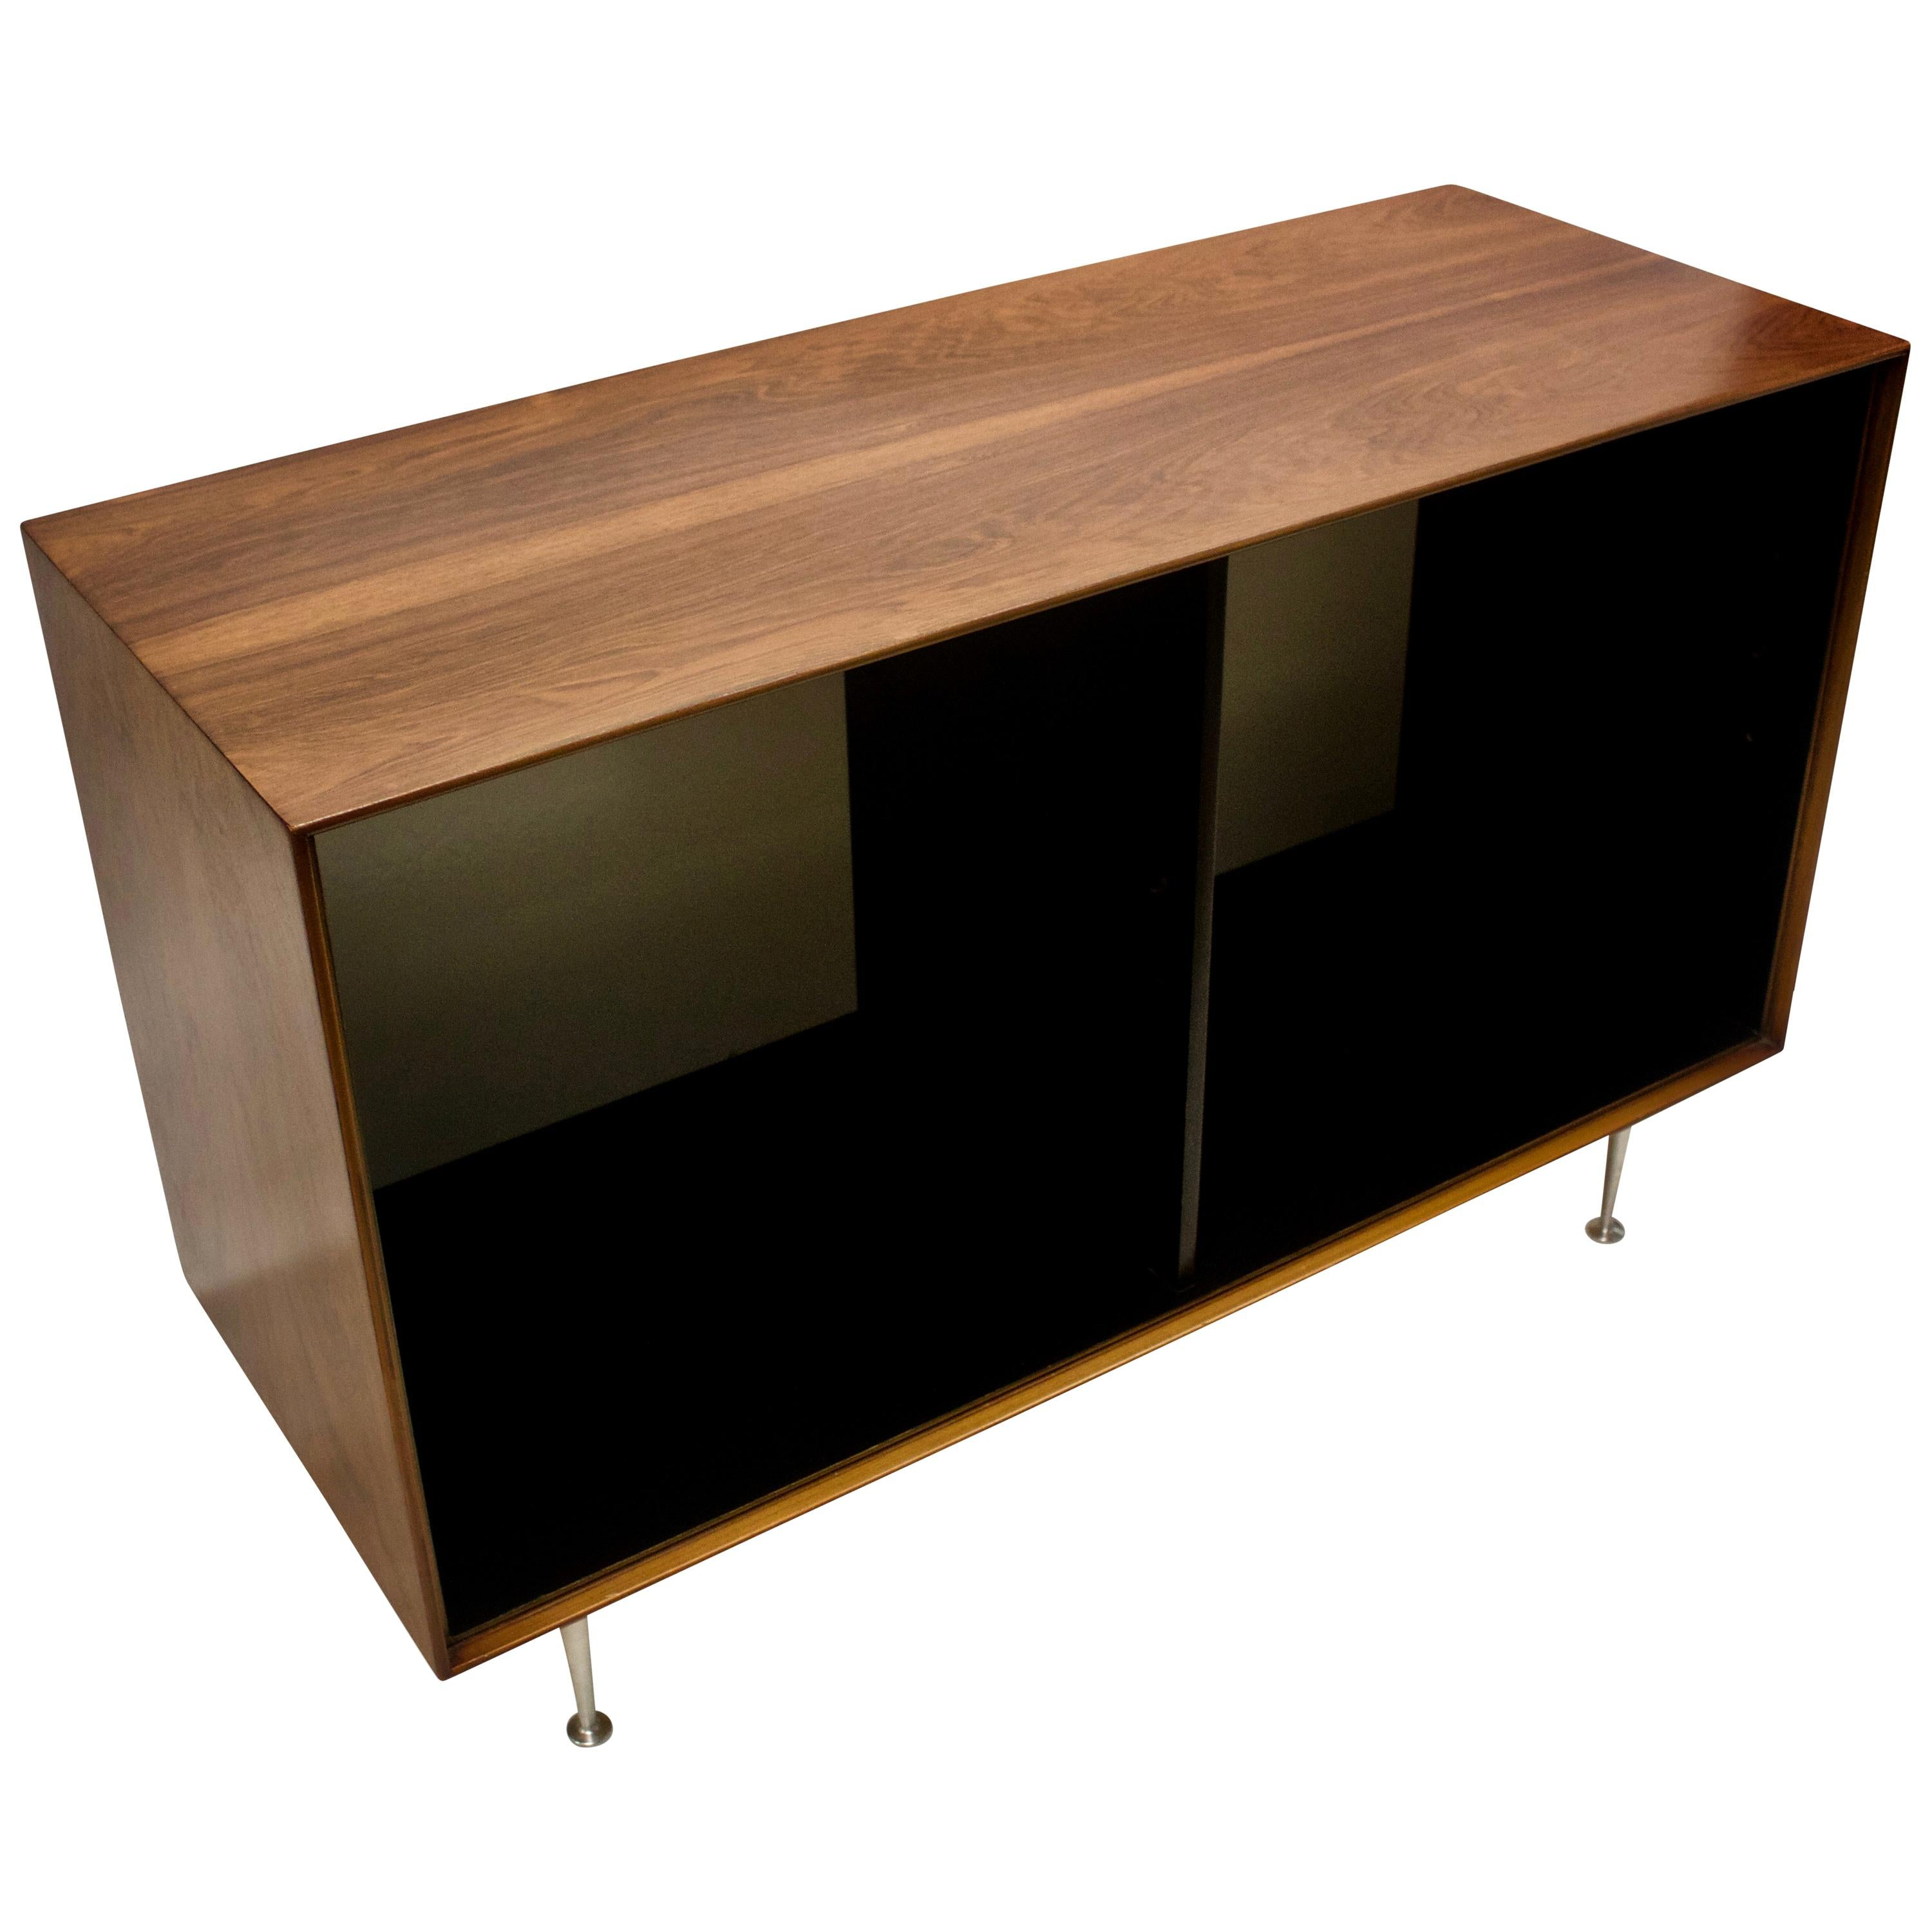 Midcentury George Nelson Rosewood Thin Edge Open Storage Cabinet, USA, 1950s